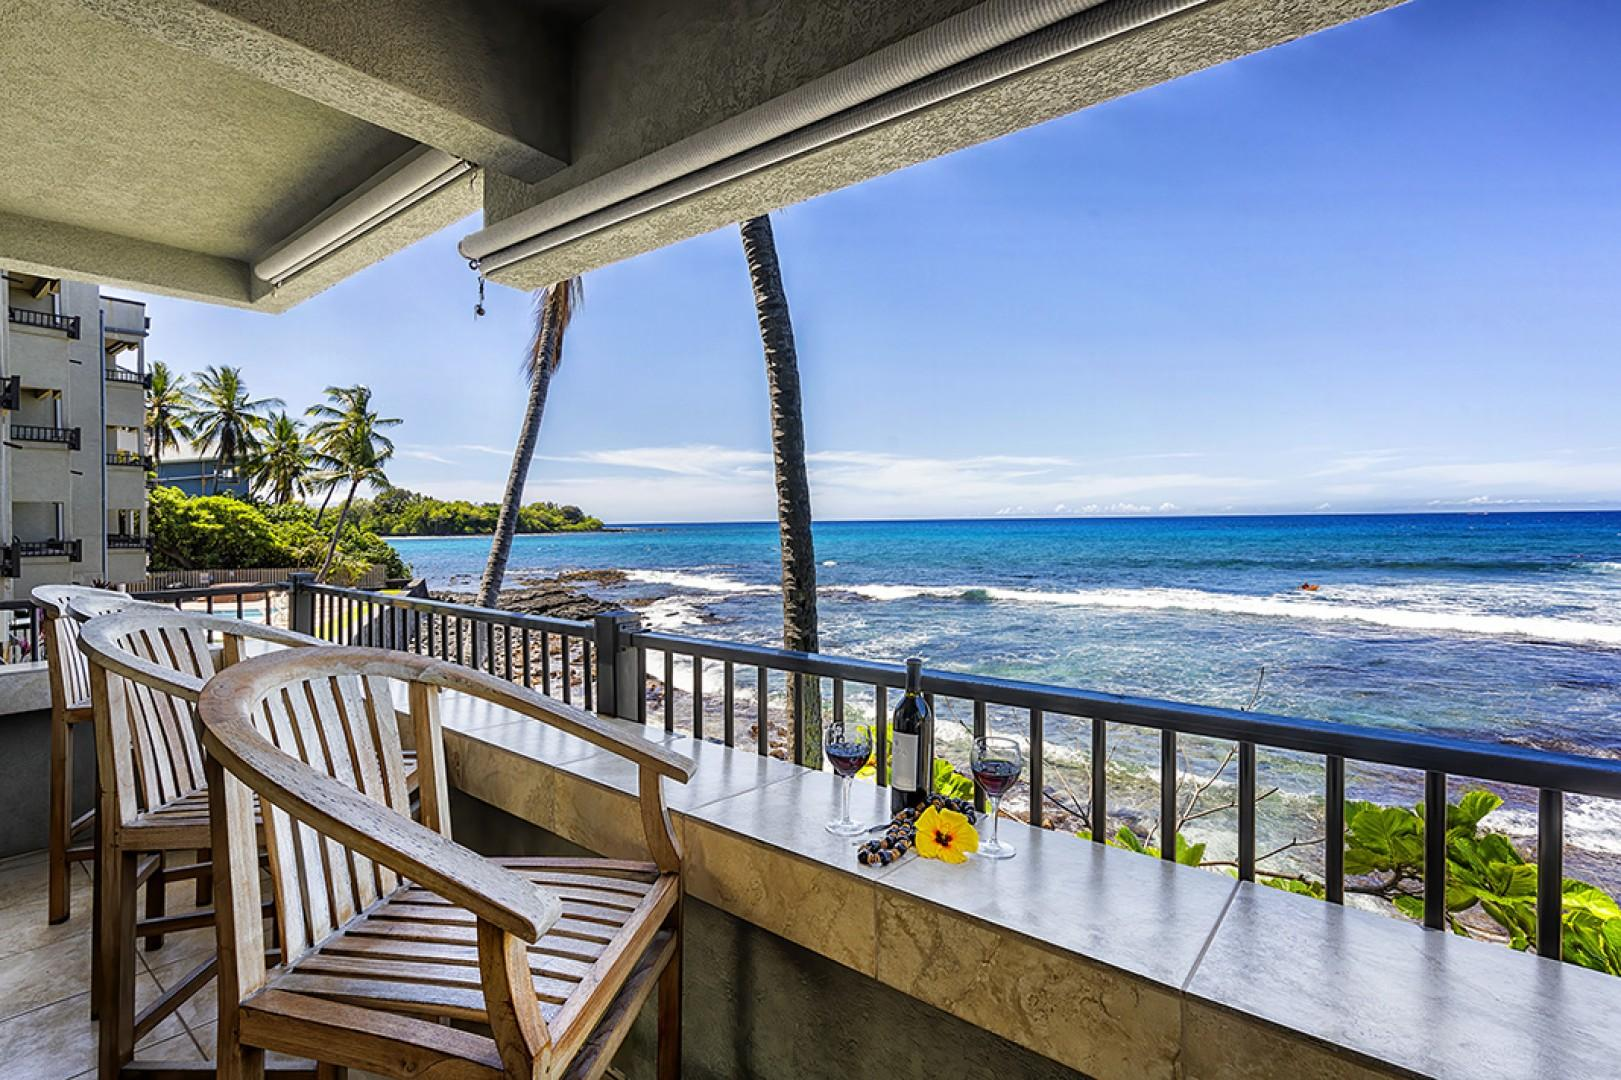 Relax on the Oceanfront Lanai with your favorite beverage!